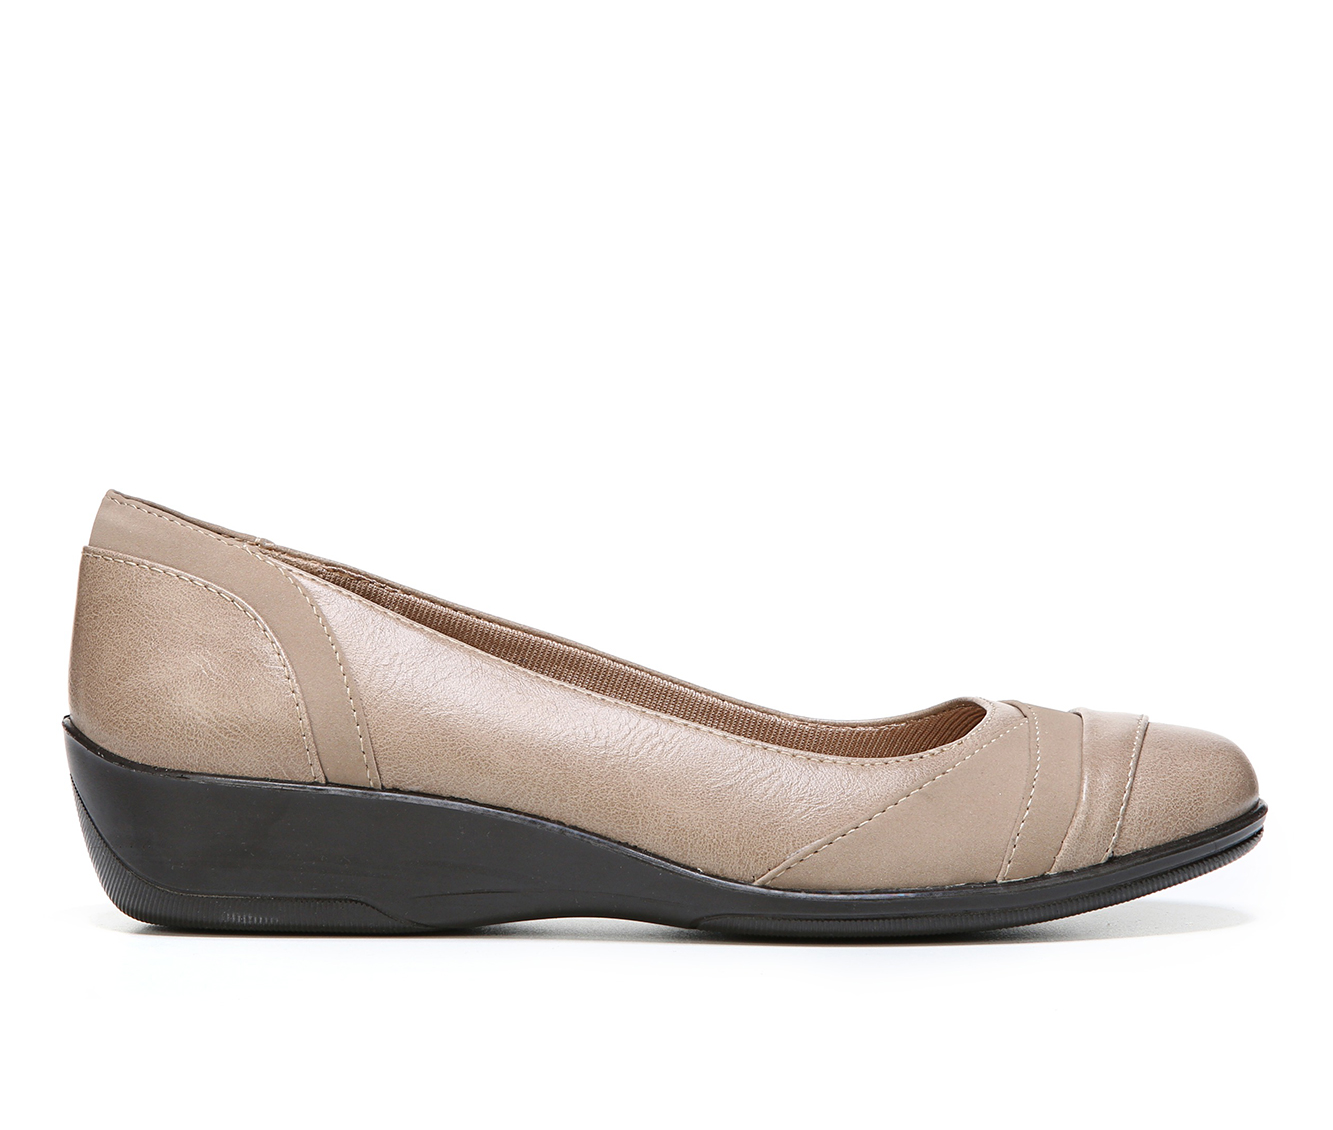 LifeStride Indeed Women's Shoe (Beige Faux Leather)